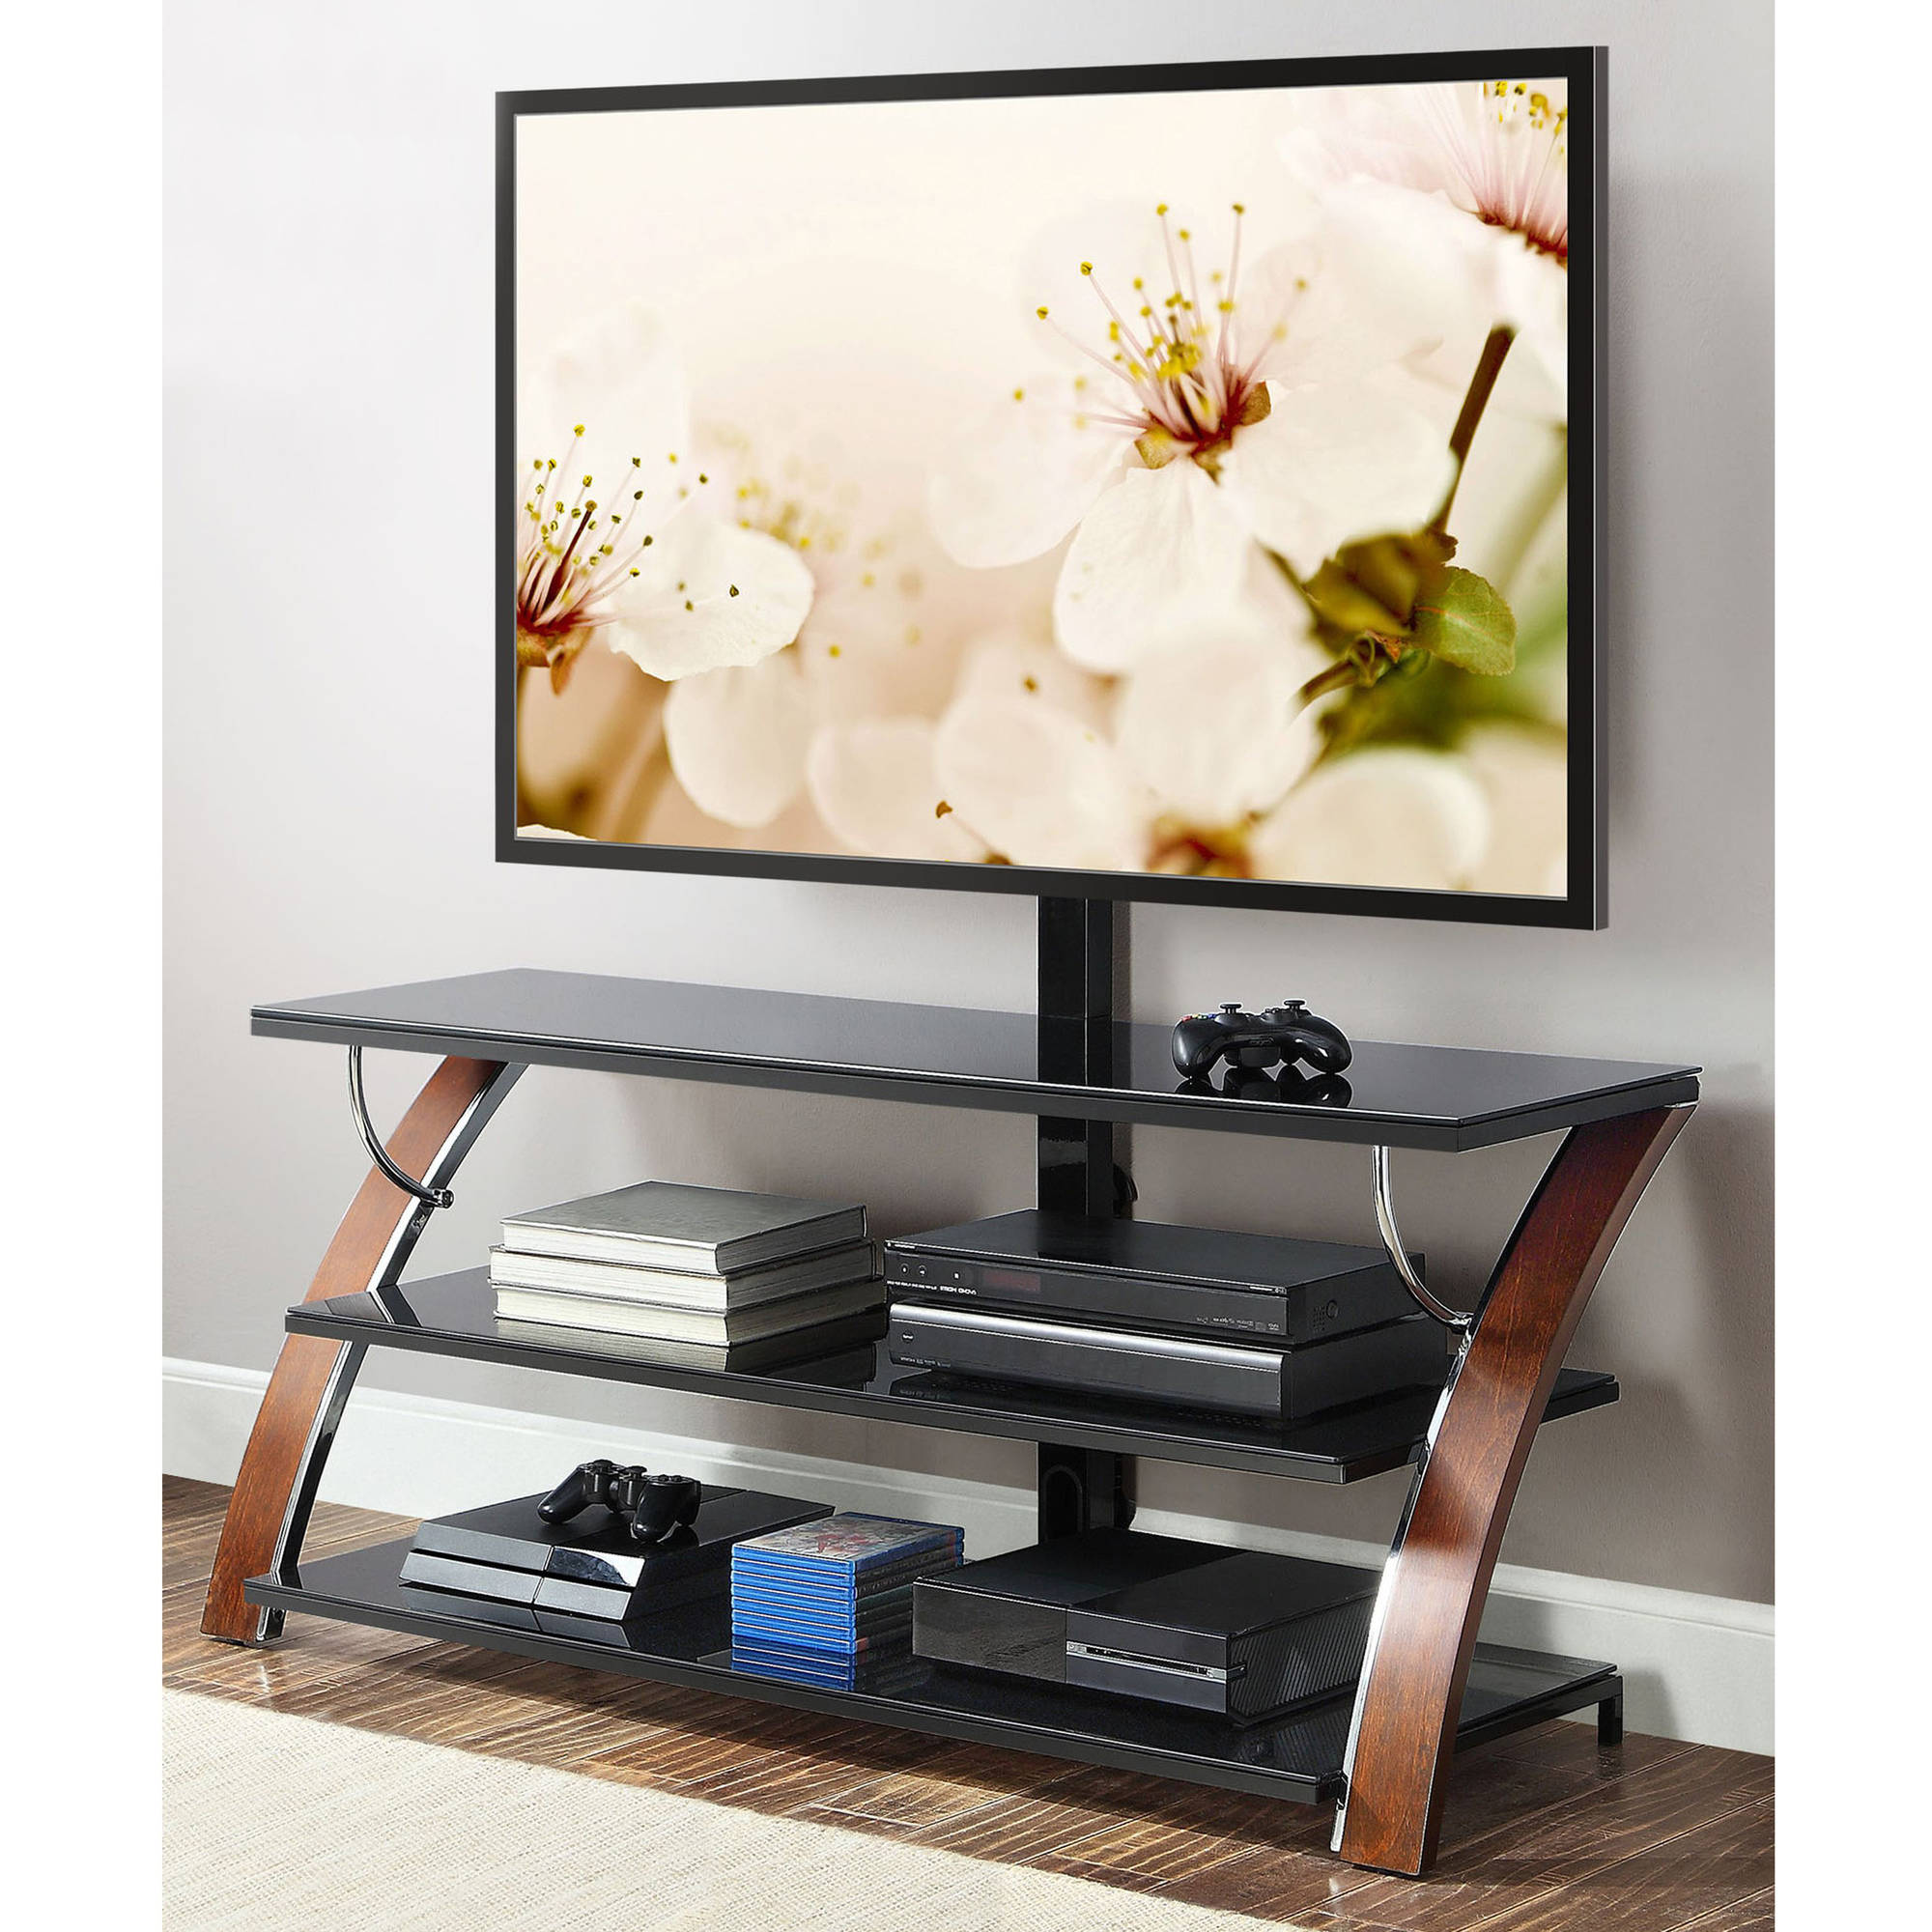 Whalen Payton Brown Cherry 3 In 1 Flat Panel Tv Stand For Tvs Up To 65